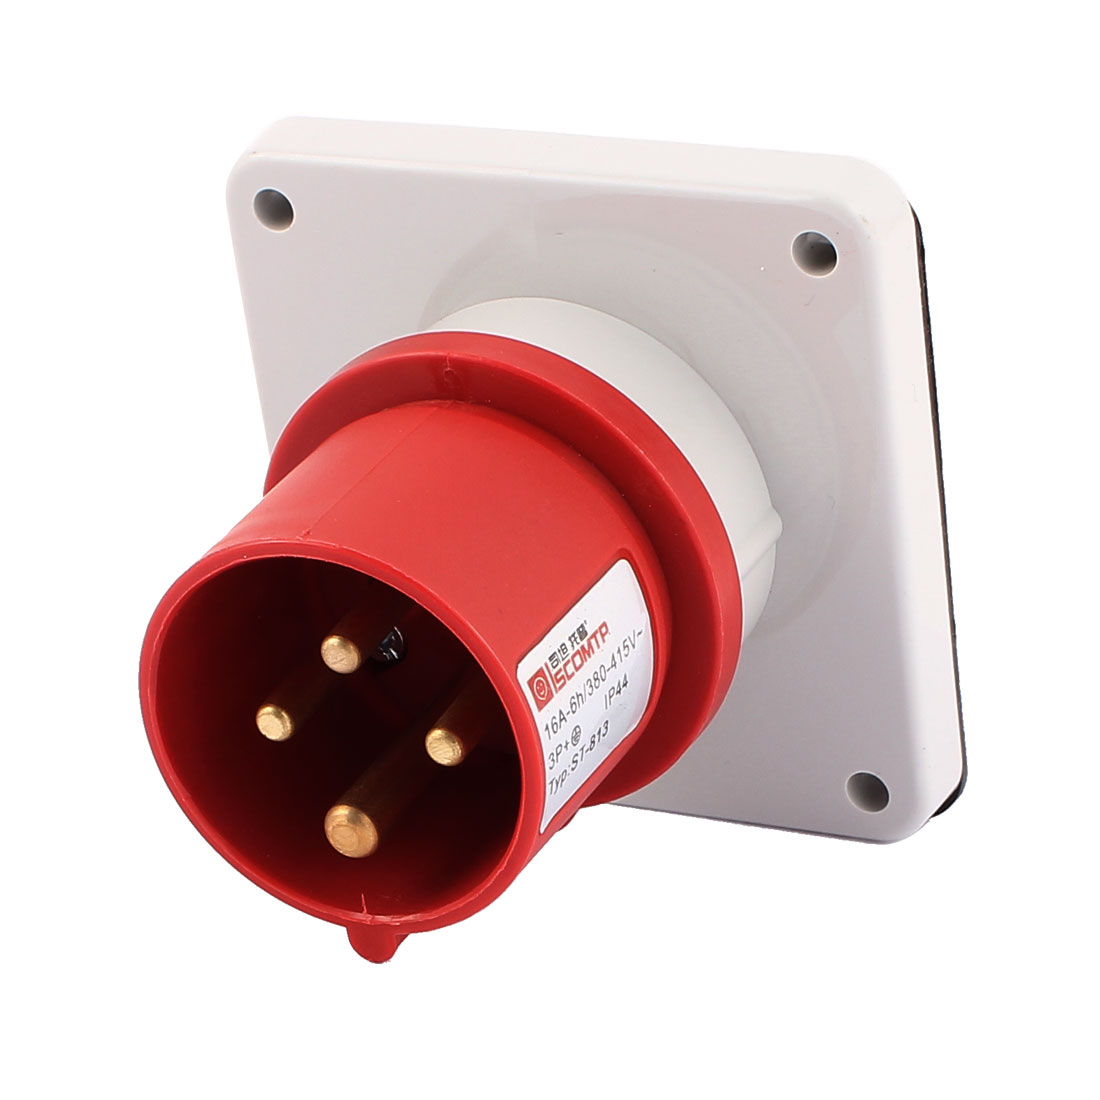 AC 380V-415V 16A IP44 3P+E 4 Terminal Male Industrial Panel Mounting Plug